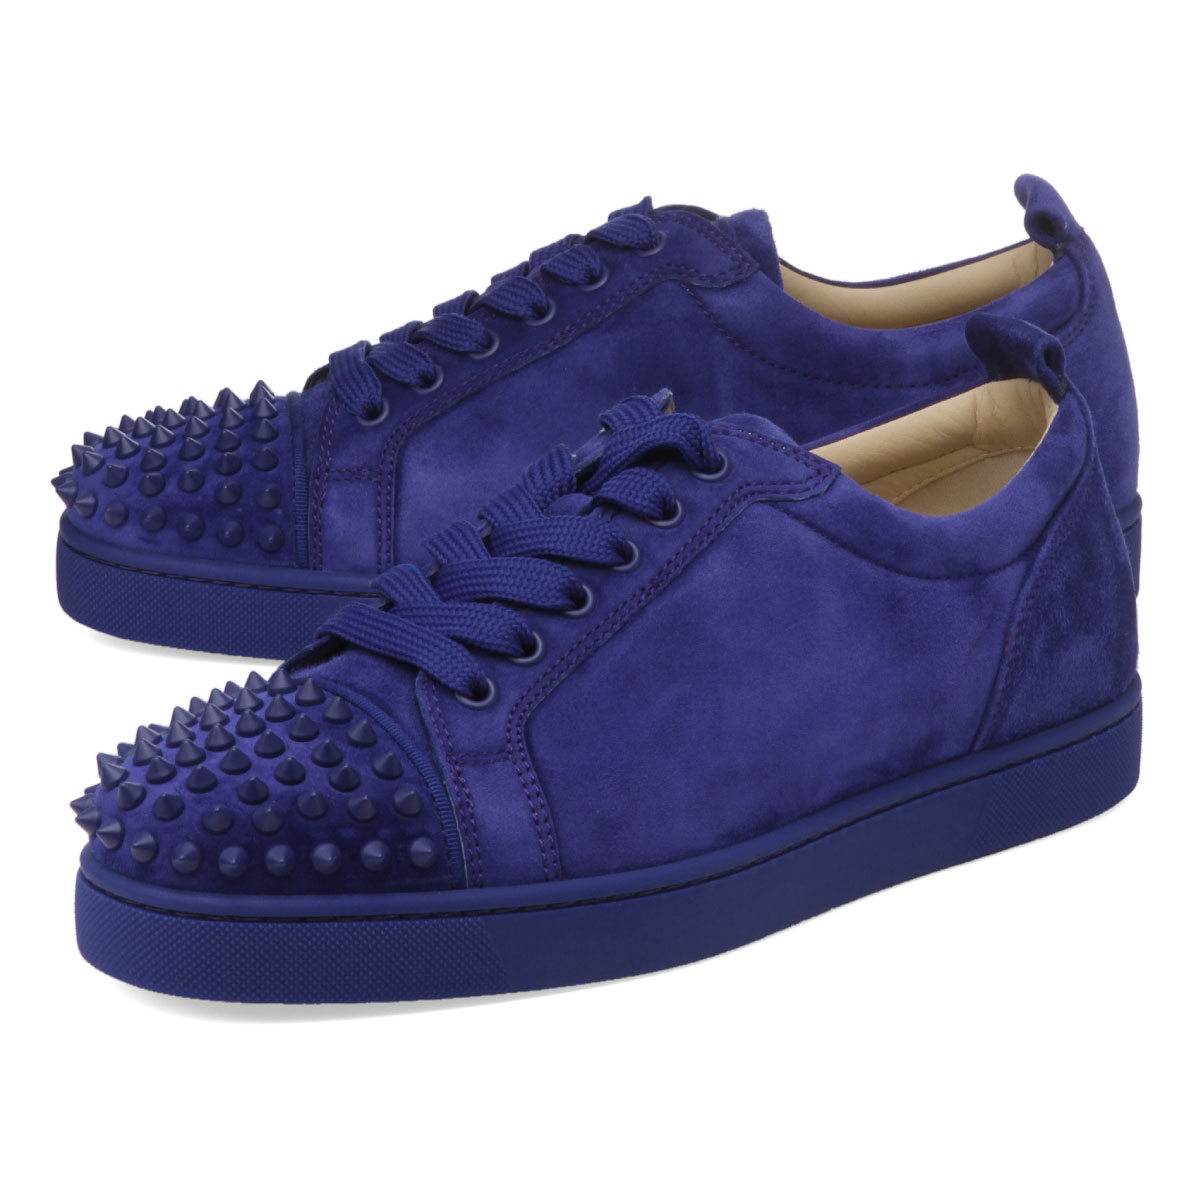 super popular 702fe 70111 1180051 クリスチャンルブタン Christian Louboutin shoes men V083 sneakers LOUIS JUNIOR  SPIKES FLAT Lewis Junius pike staple fiber rat NOMADE/NOMADE MAT blue